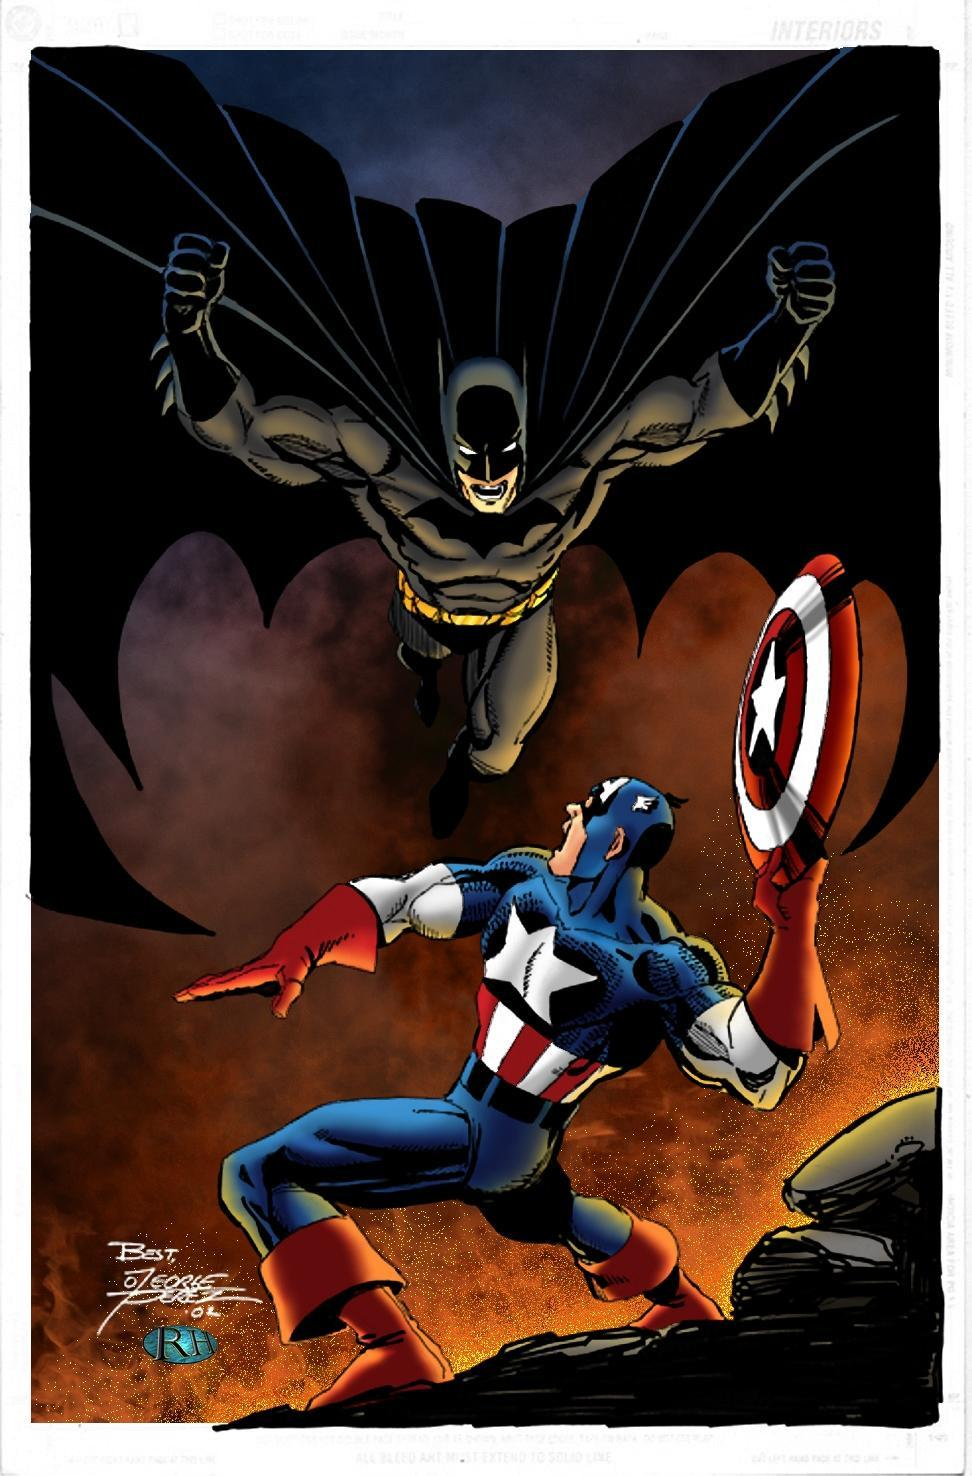 Batman or Captain America?